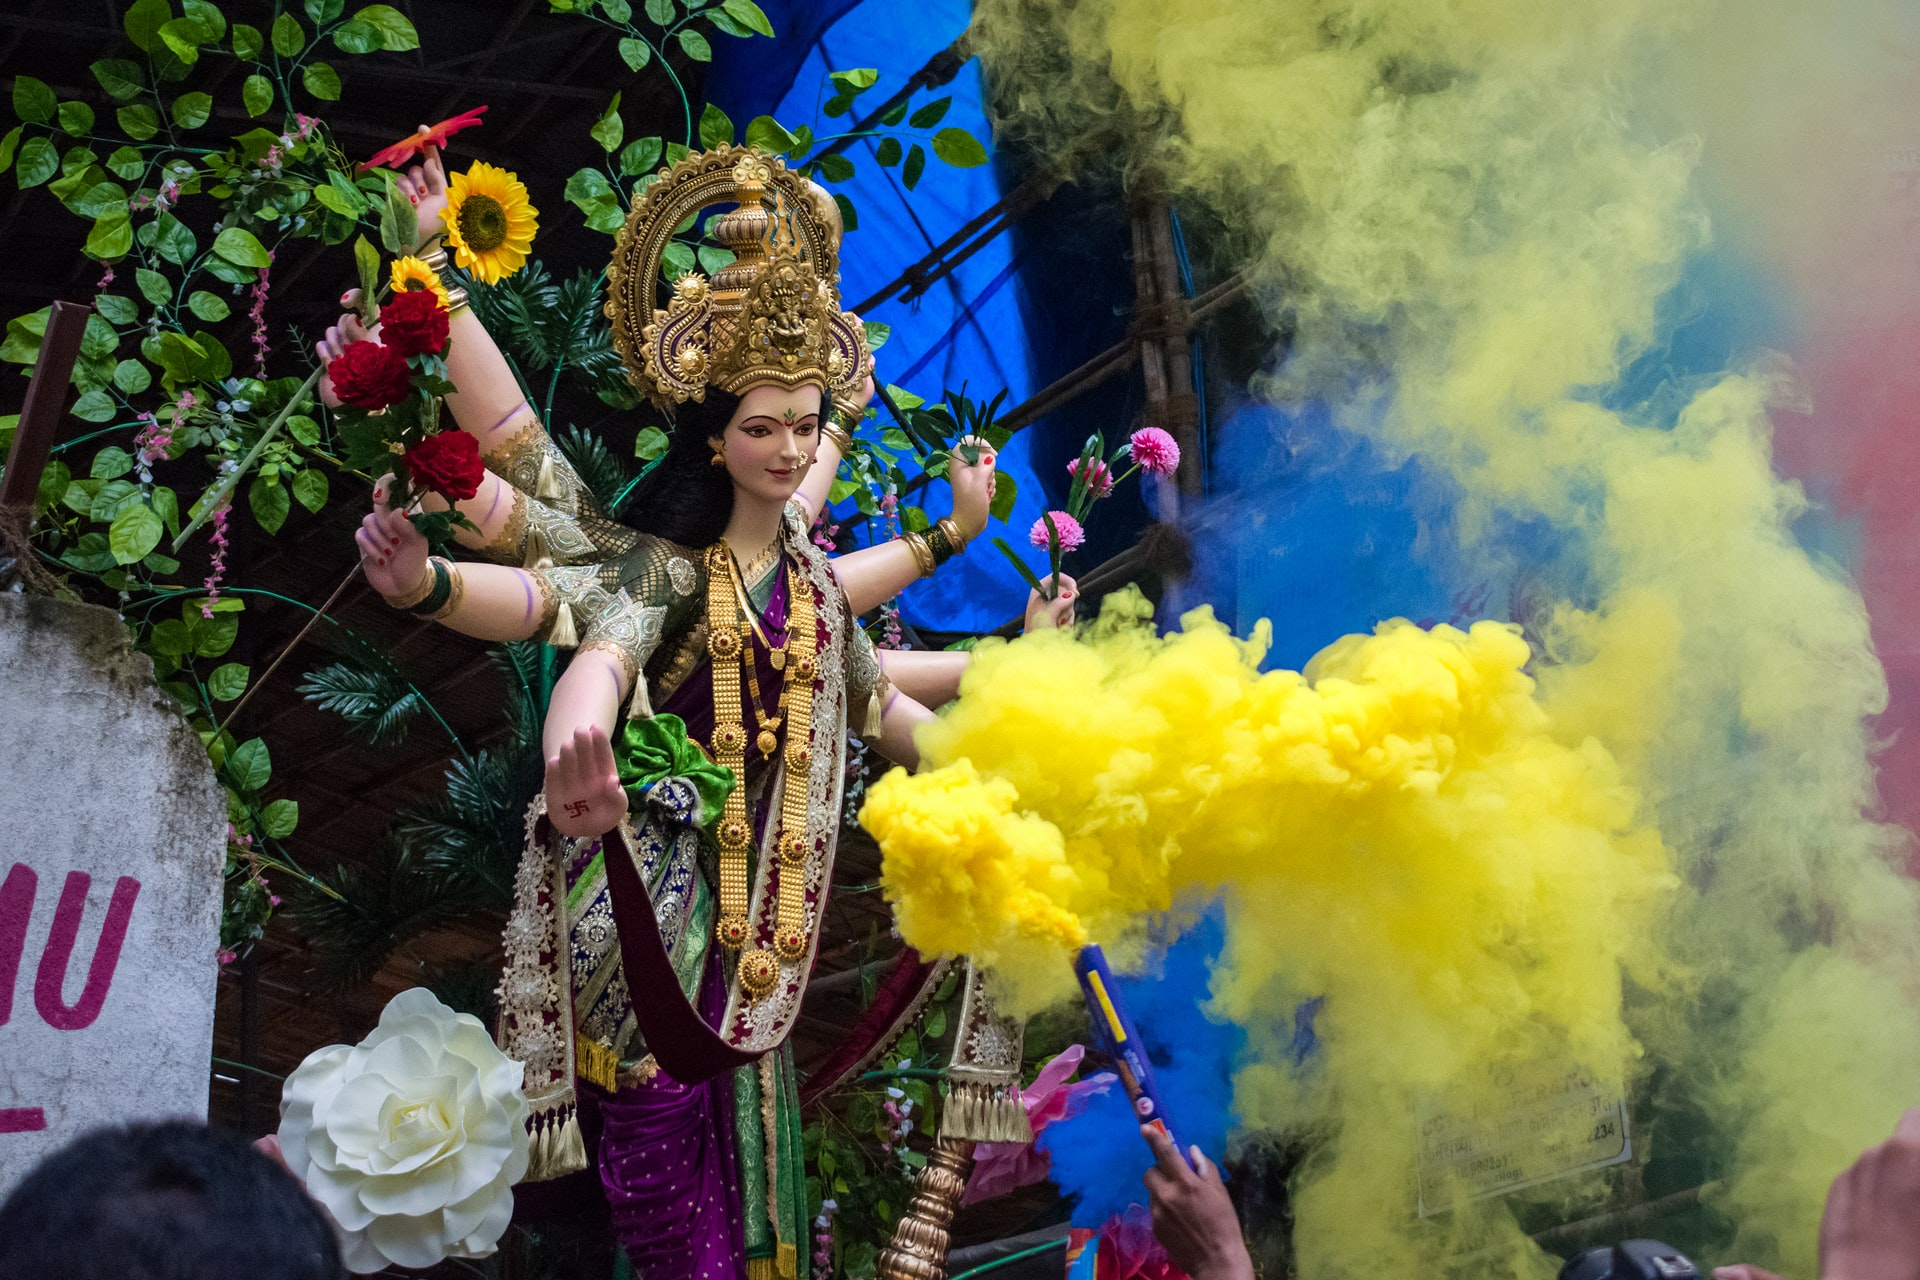 All the information you want to know about Sharad Navratri 2021 and Durga Puja